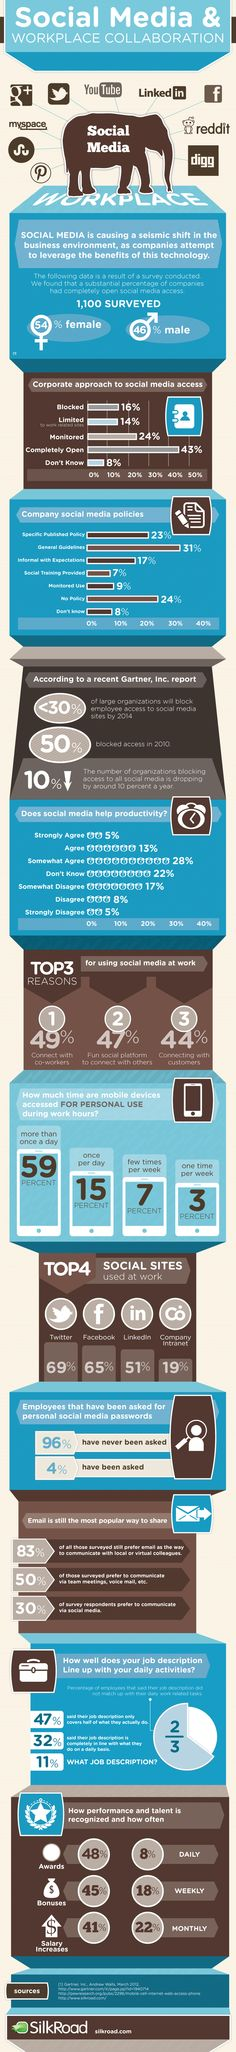 Social Media and Workplace collaboration #infographic